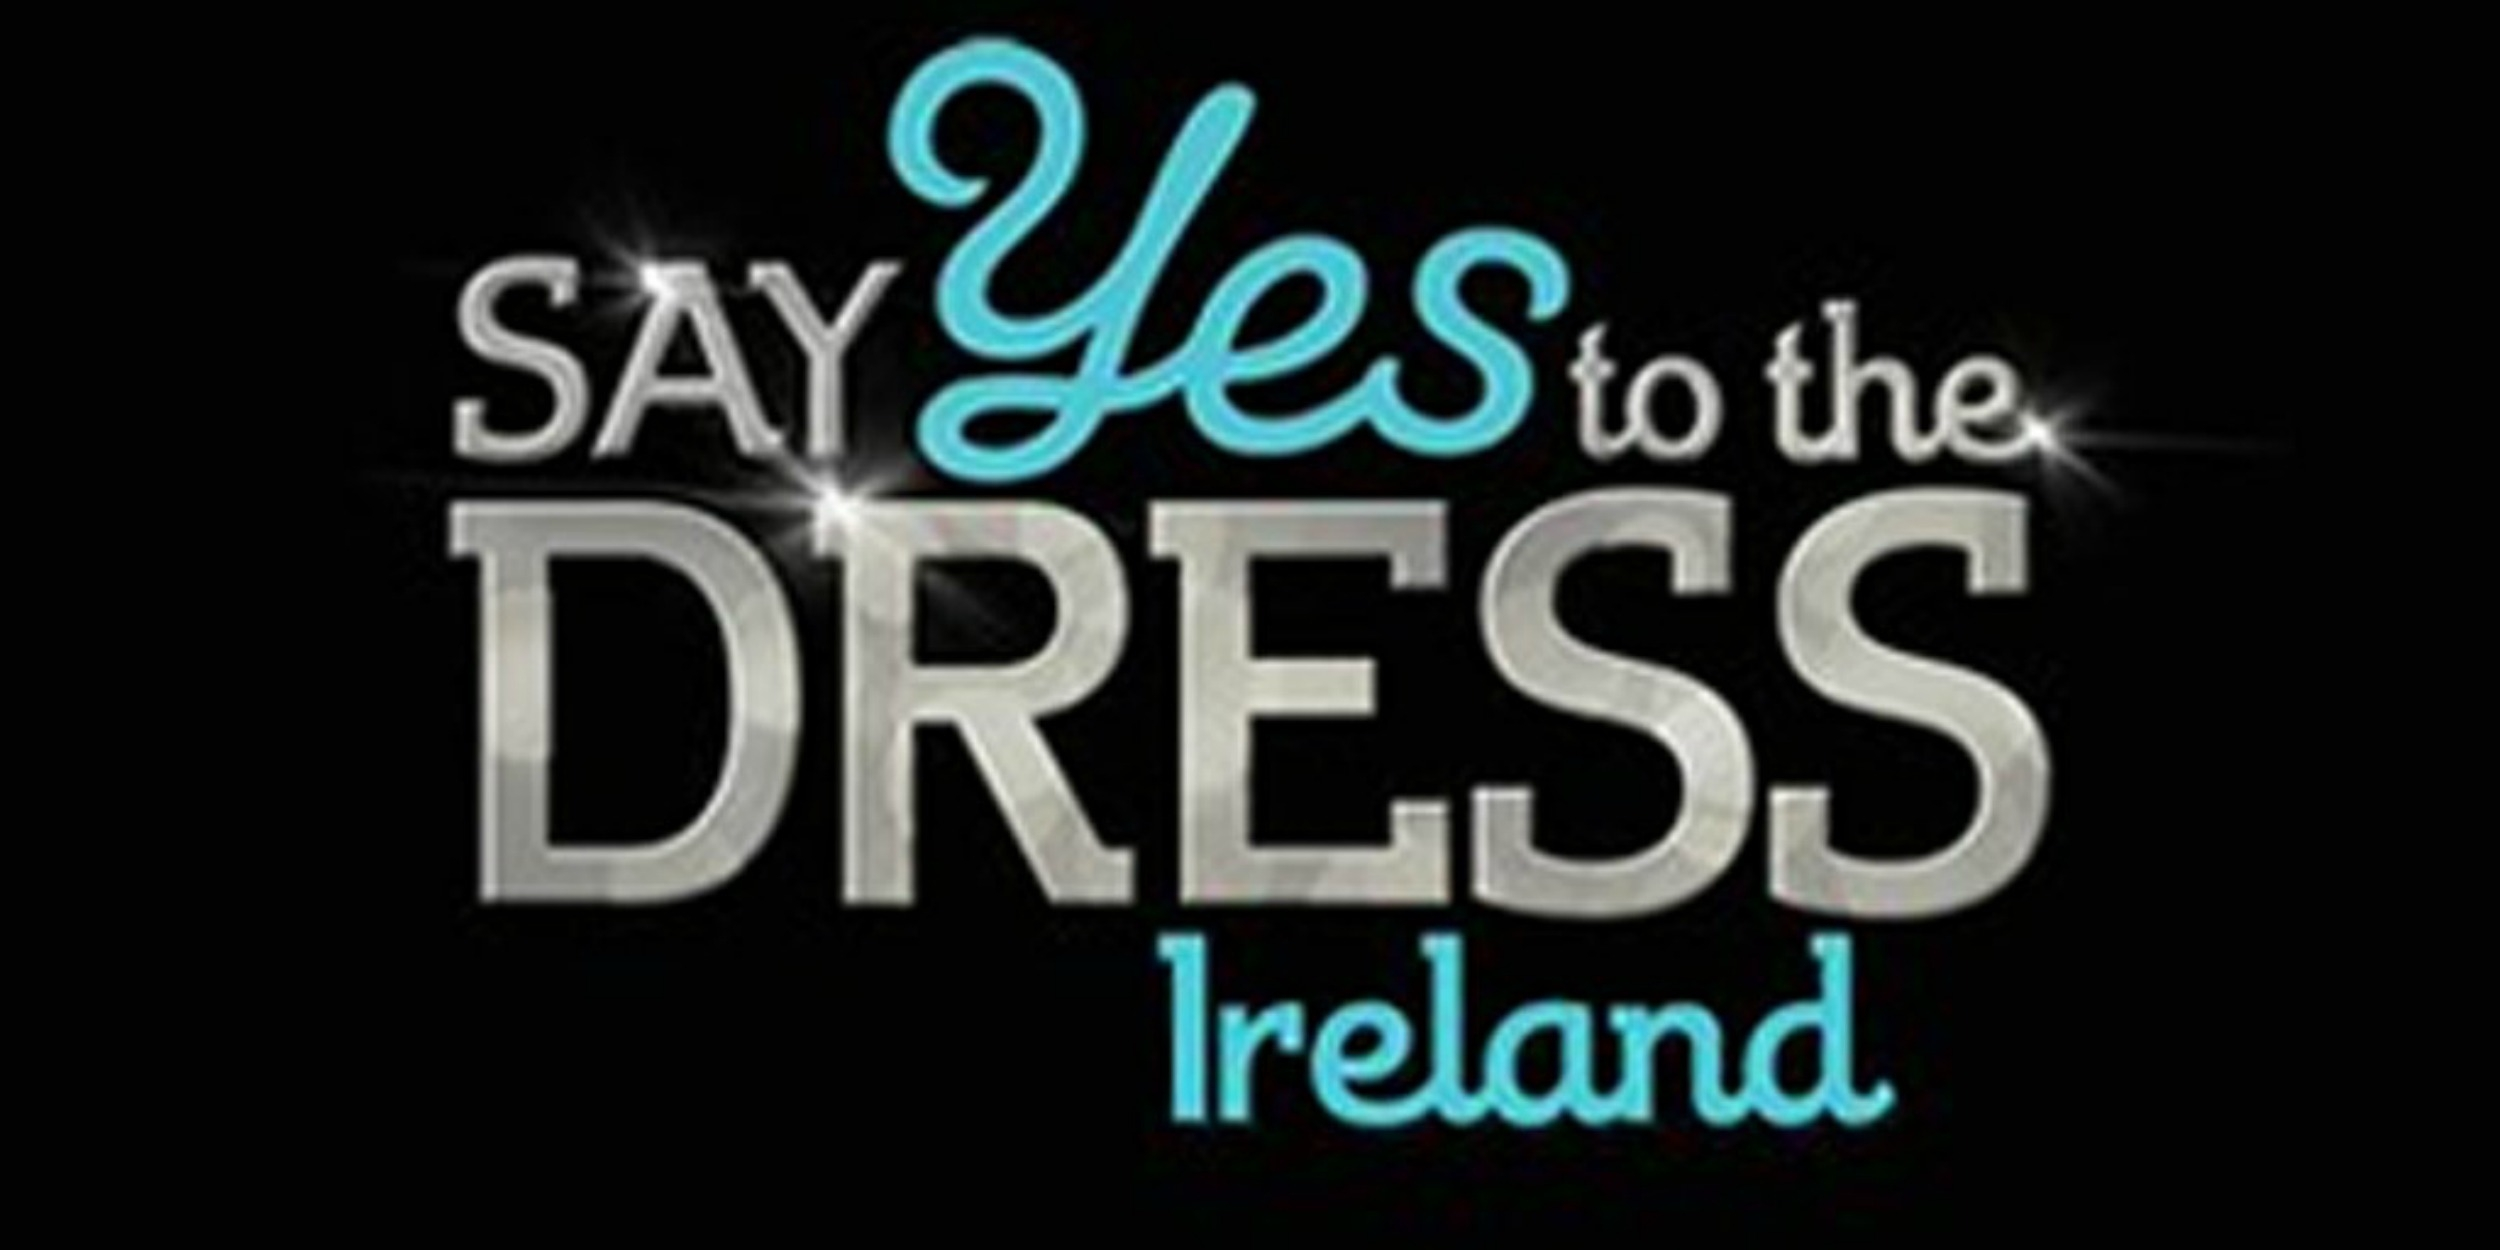 Bride-to-be? Say Yes to the Dress Ireland is looking for you